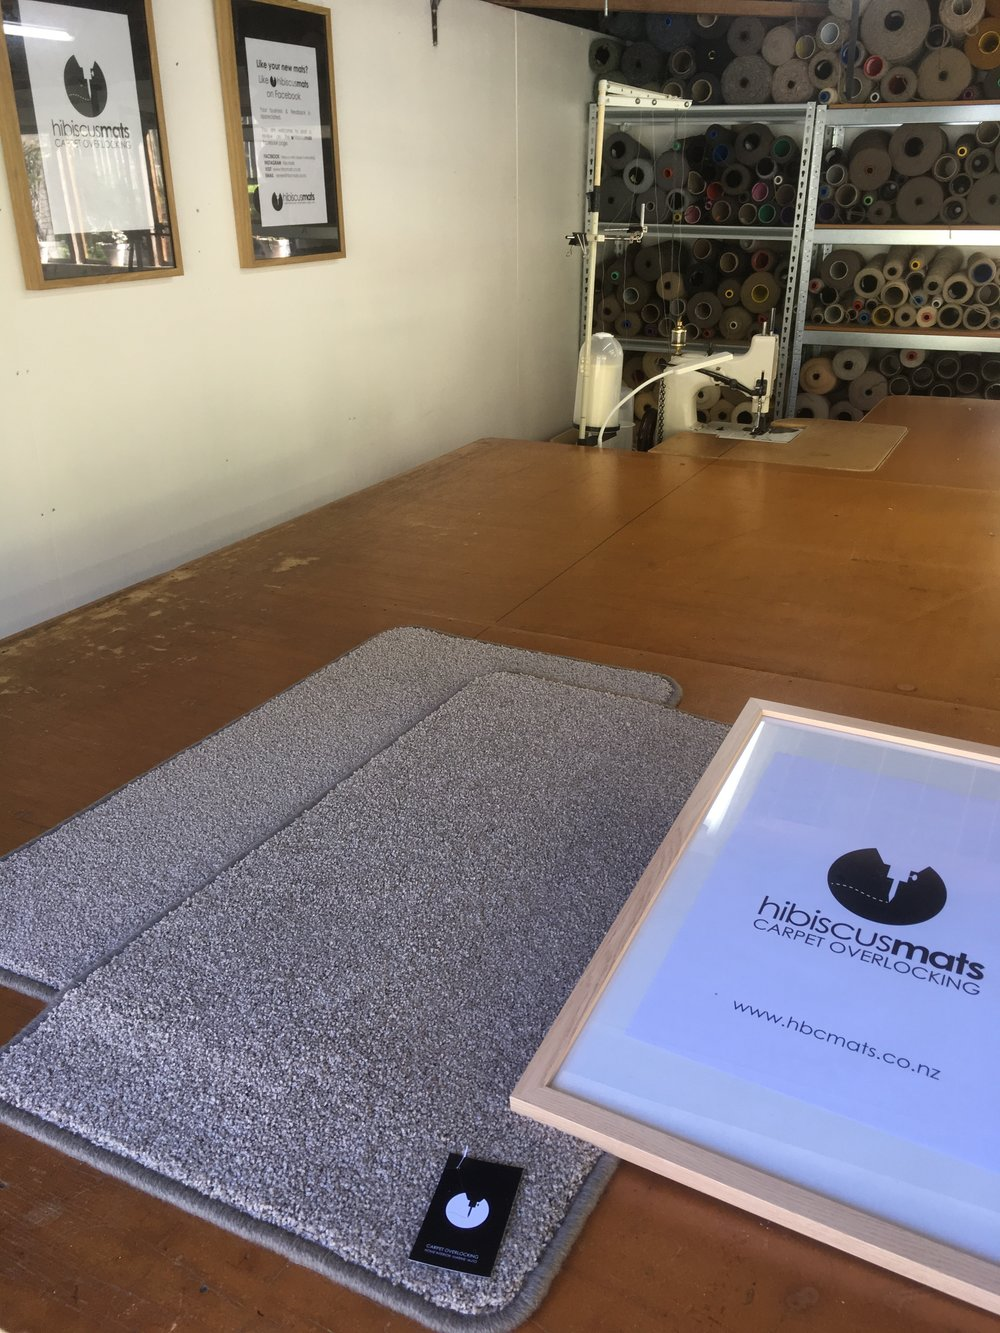 Carpet Mat 0.90m x 0.50m by Hibiscus Mats Carpet Overlocking $25 - - Measures 0.90m x 0.50m- Colour: Taupe- Rounded corners to prevent curling- Can be gripped with Giltgrip Rug Grip for an additional fee